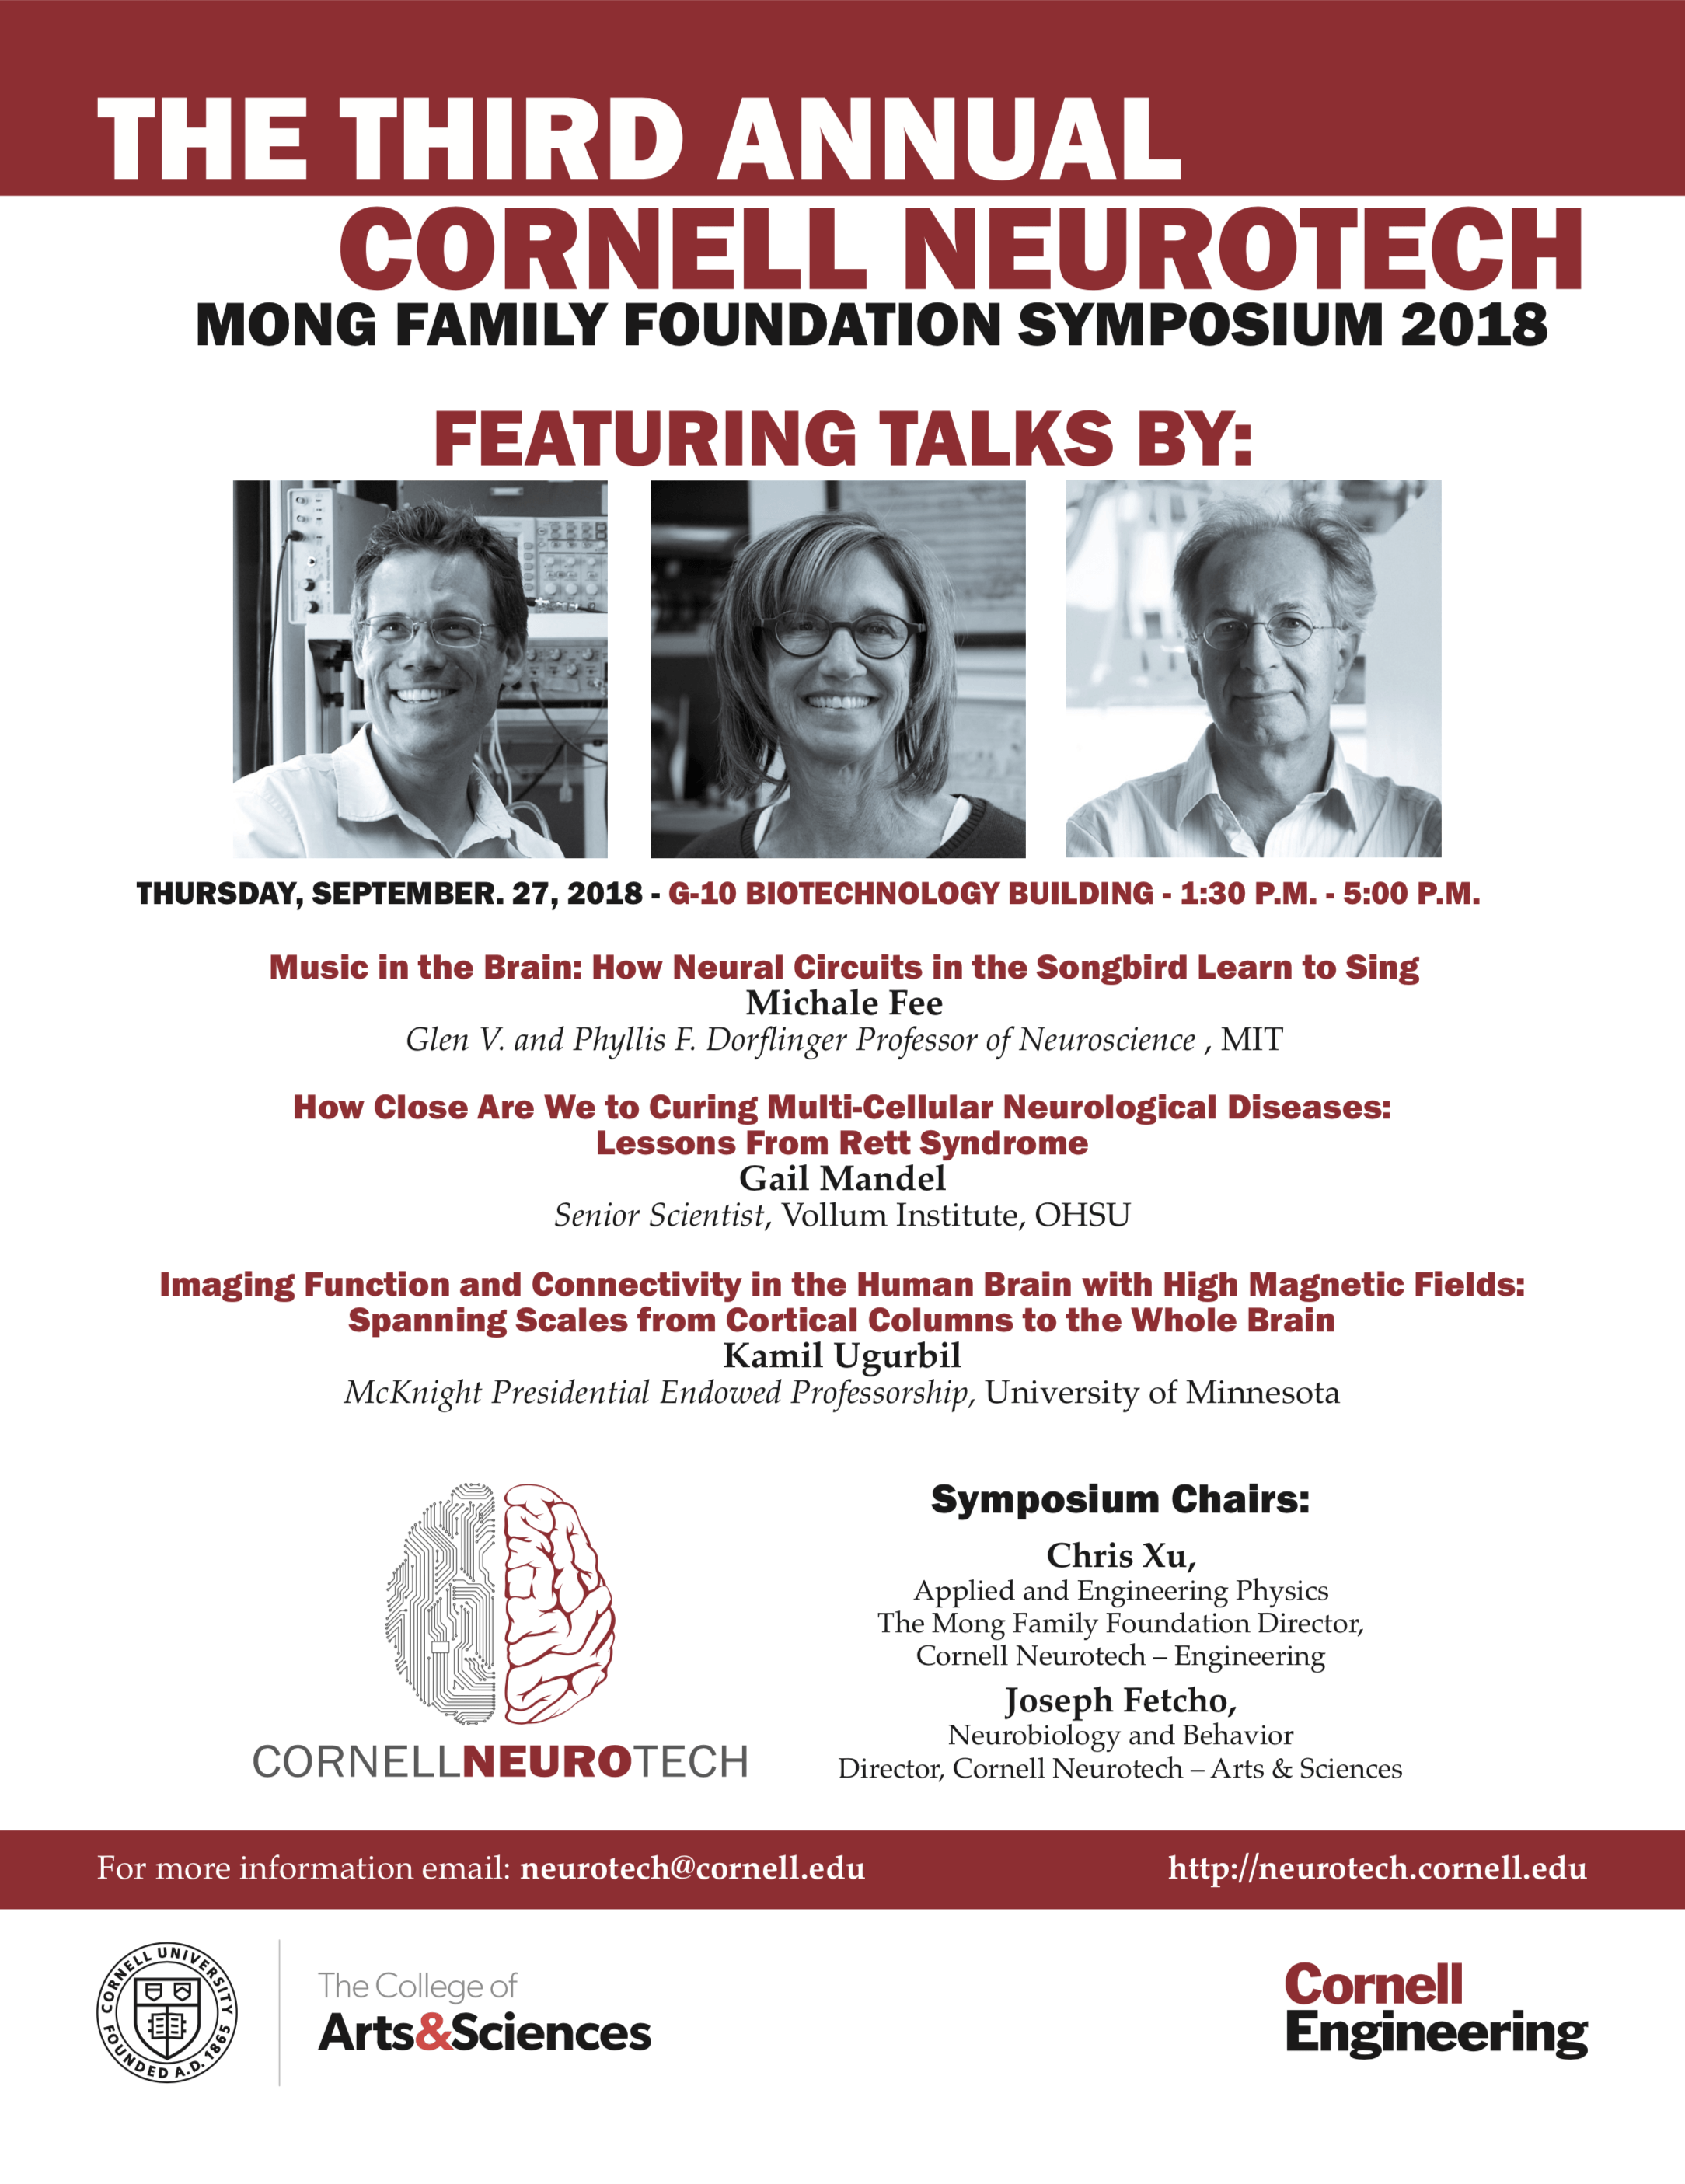 2018 Mong Family Foundation Symposium on Thursday, September 27 in G-10 Biotechnology Building from 1:30 PM to 5:00PM.